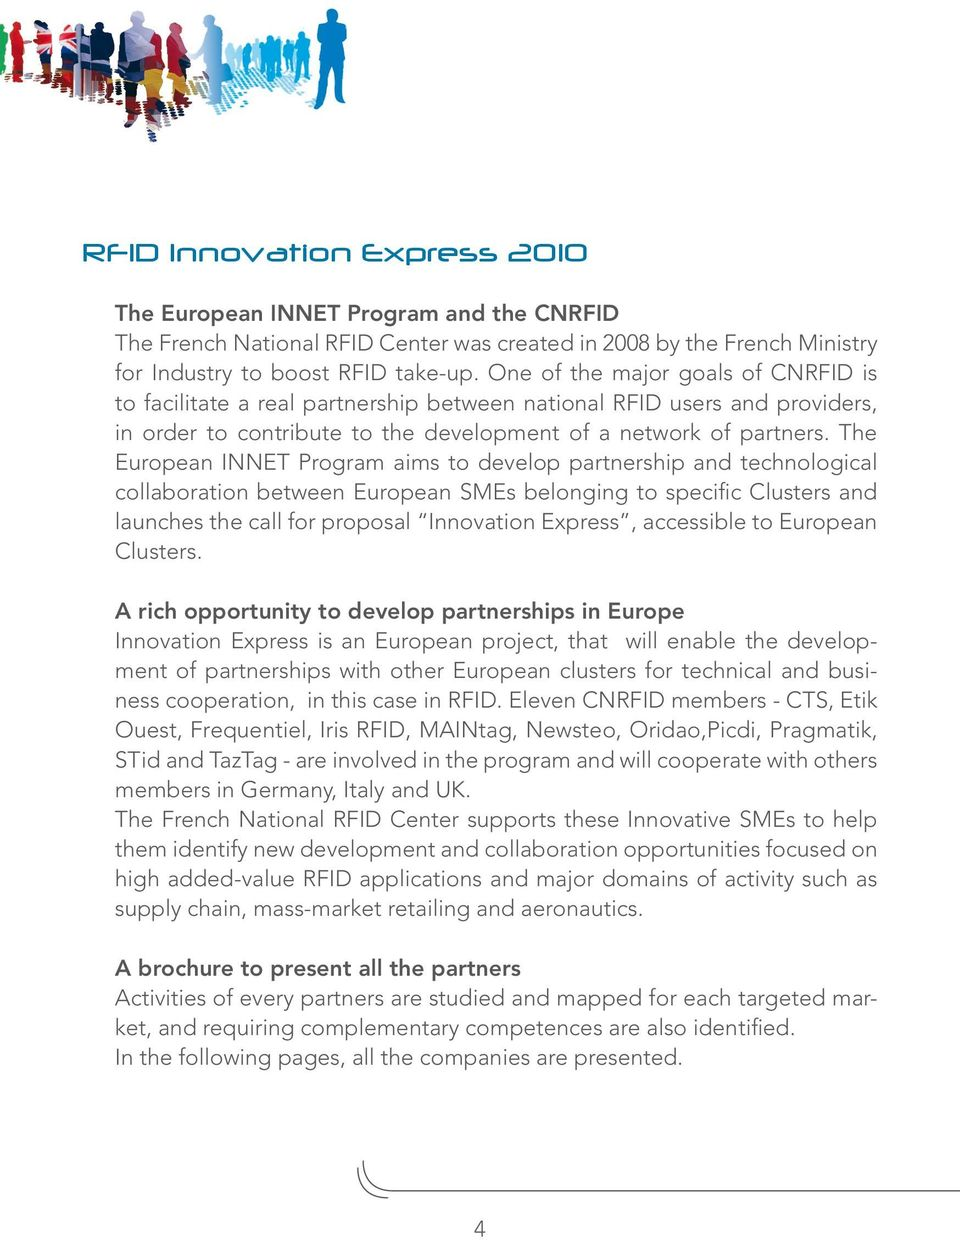 The European INNET Program aims to develop partnership and technological collaboration between European SMEs belonging to specific Clusters and launches the call for proposal Innovation Express,